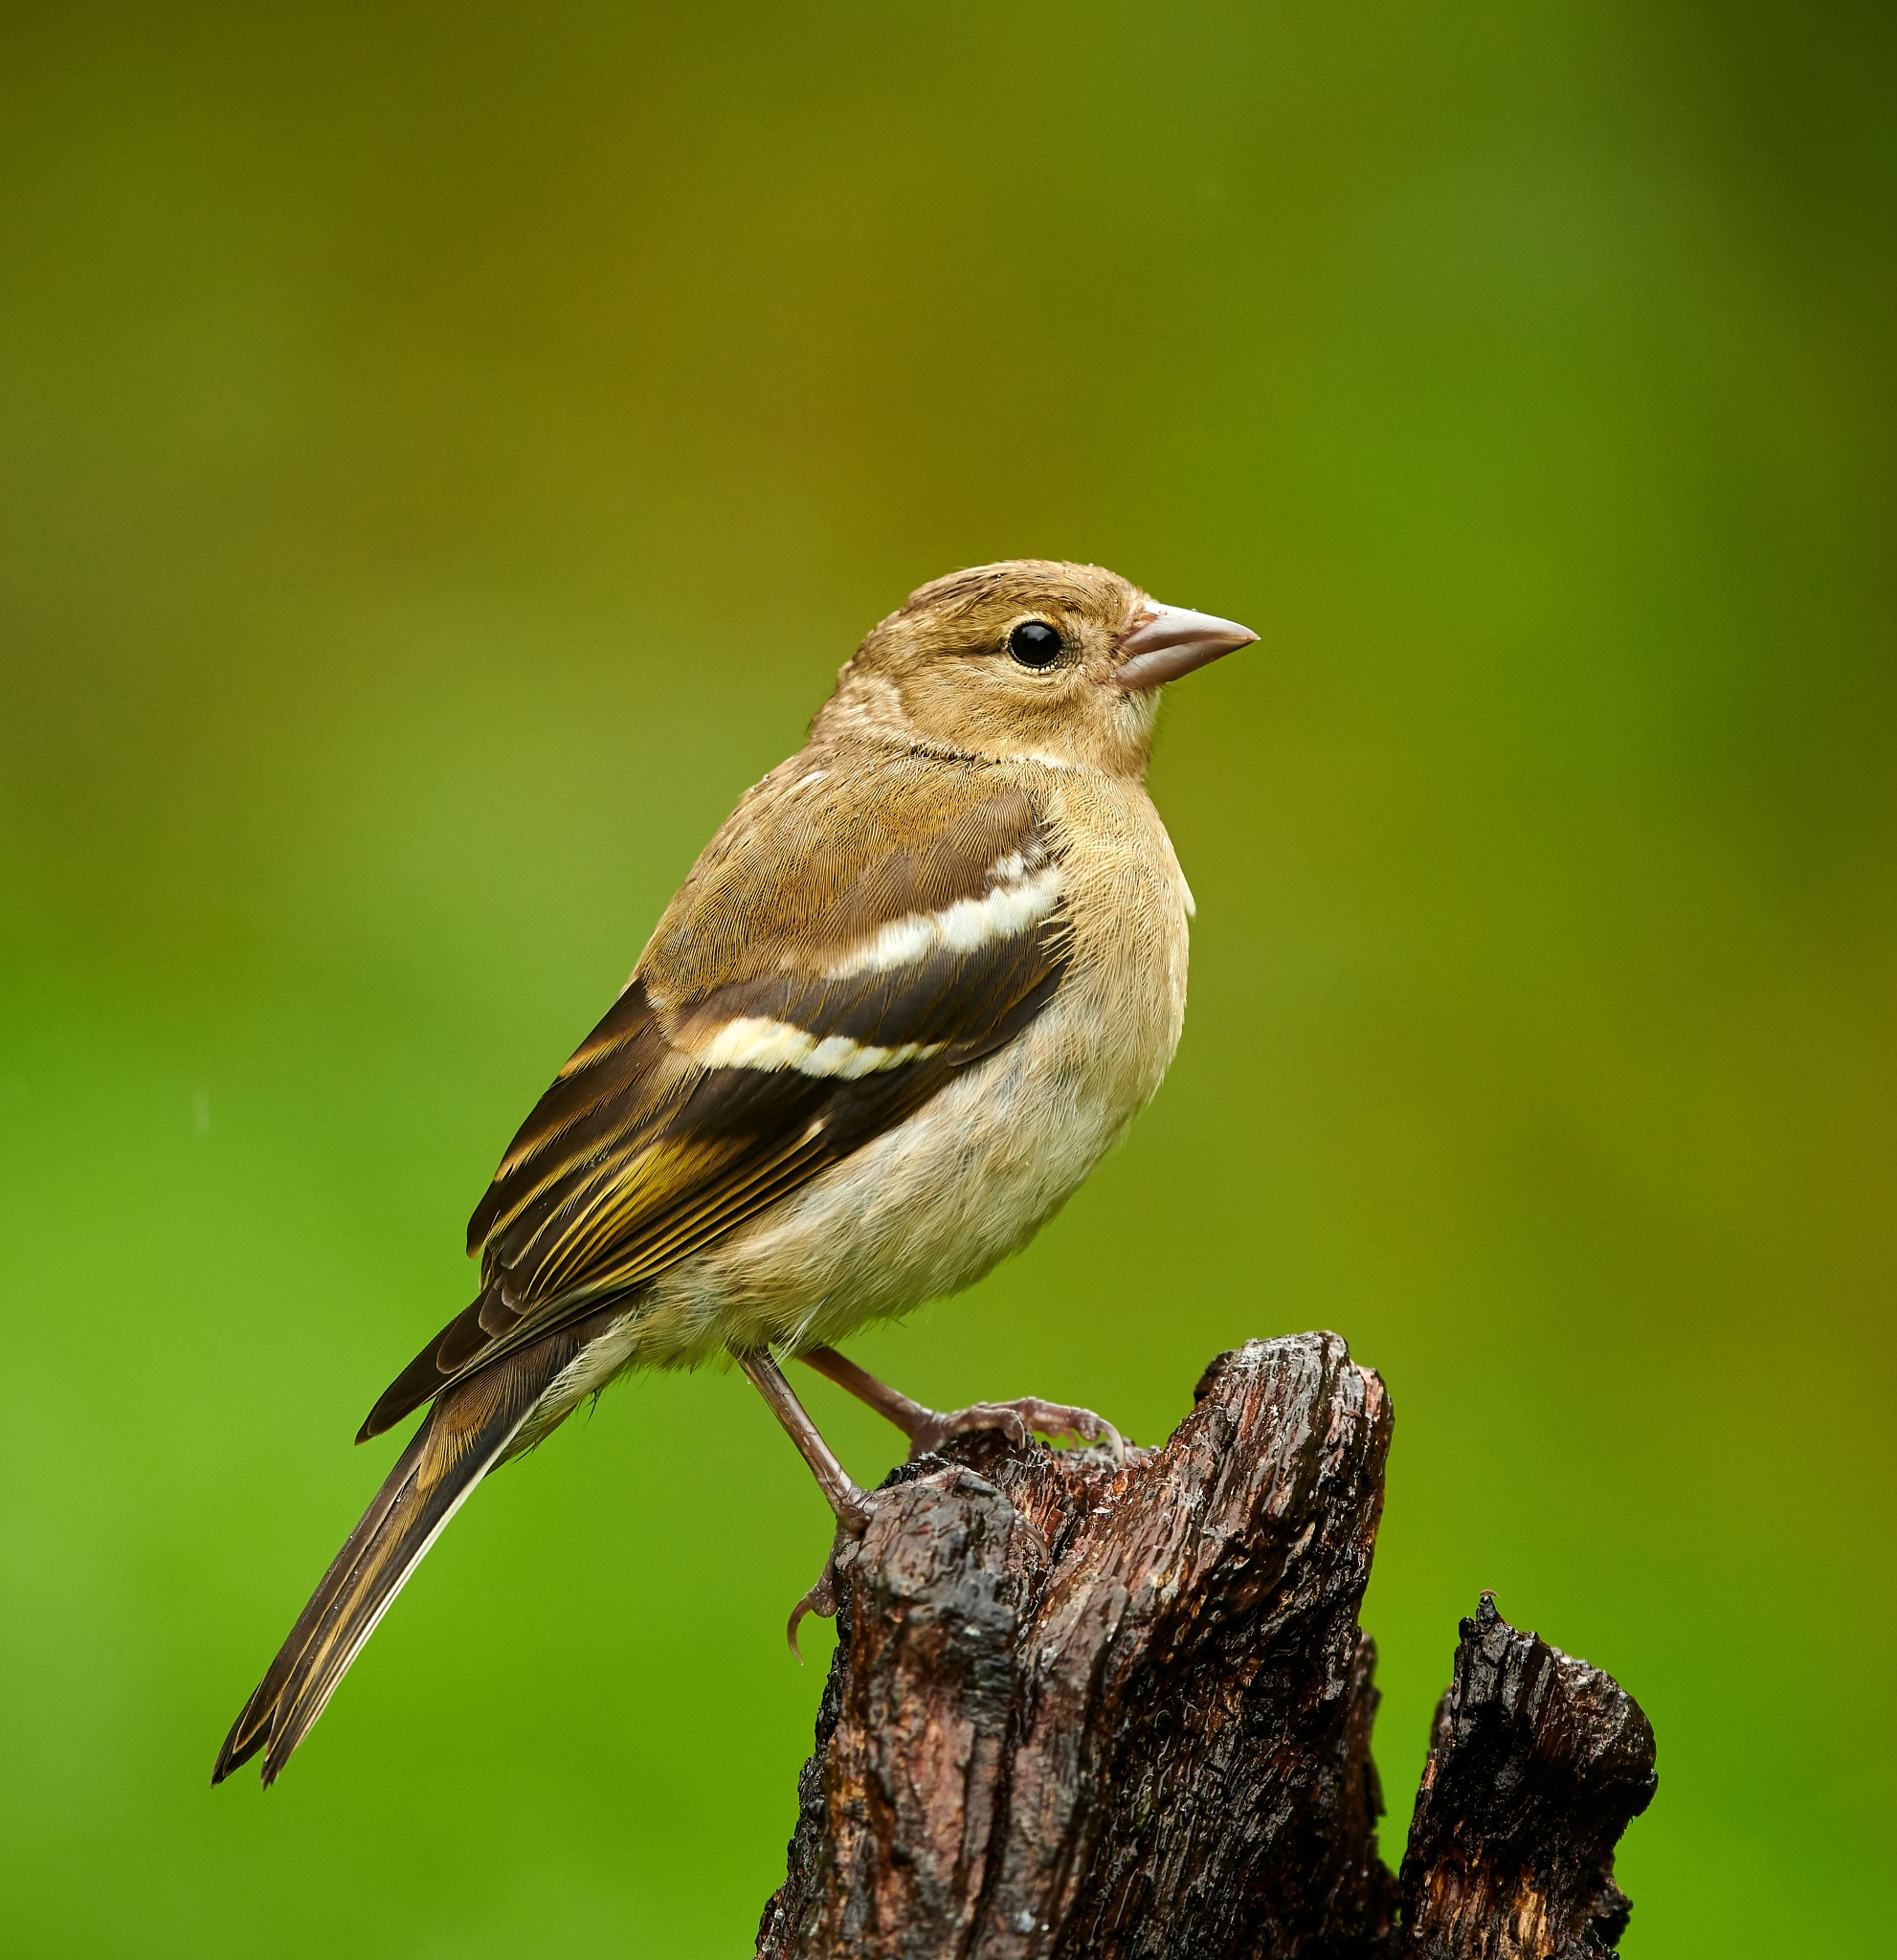 Female Chaffinch in the rain by Paul Collins